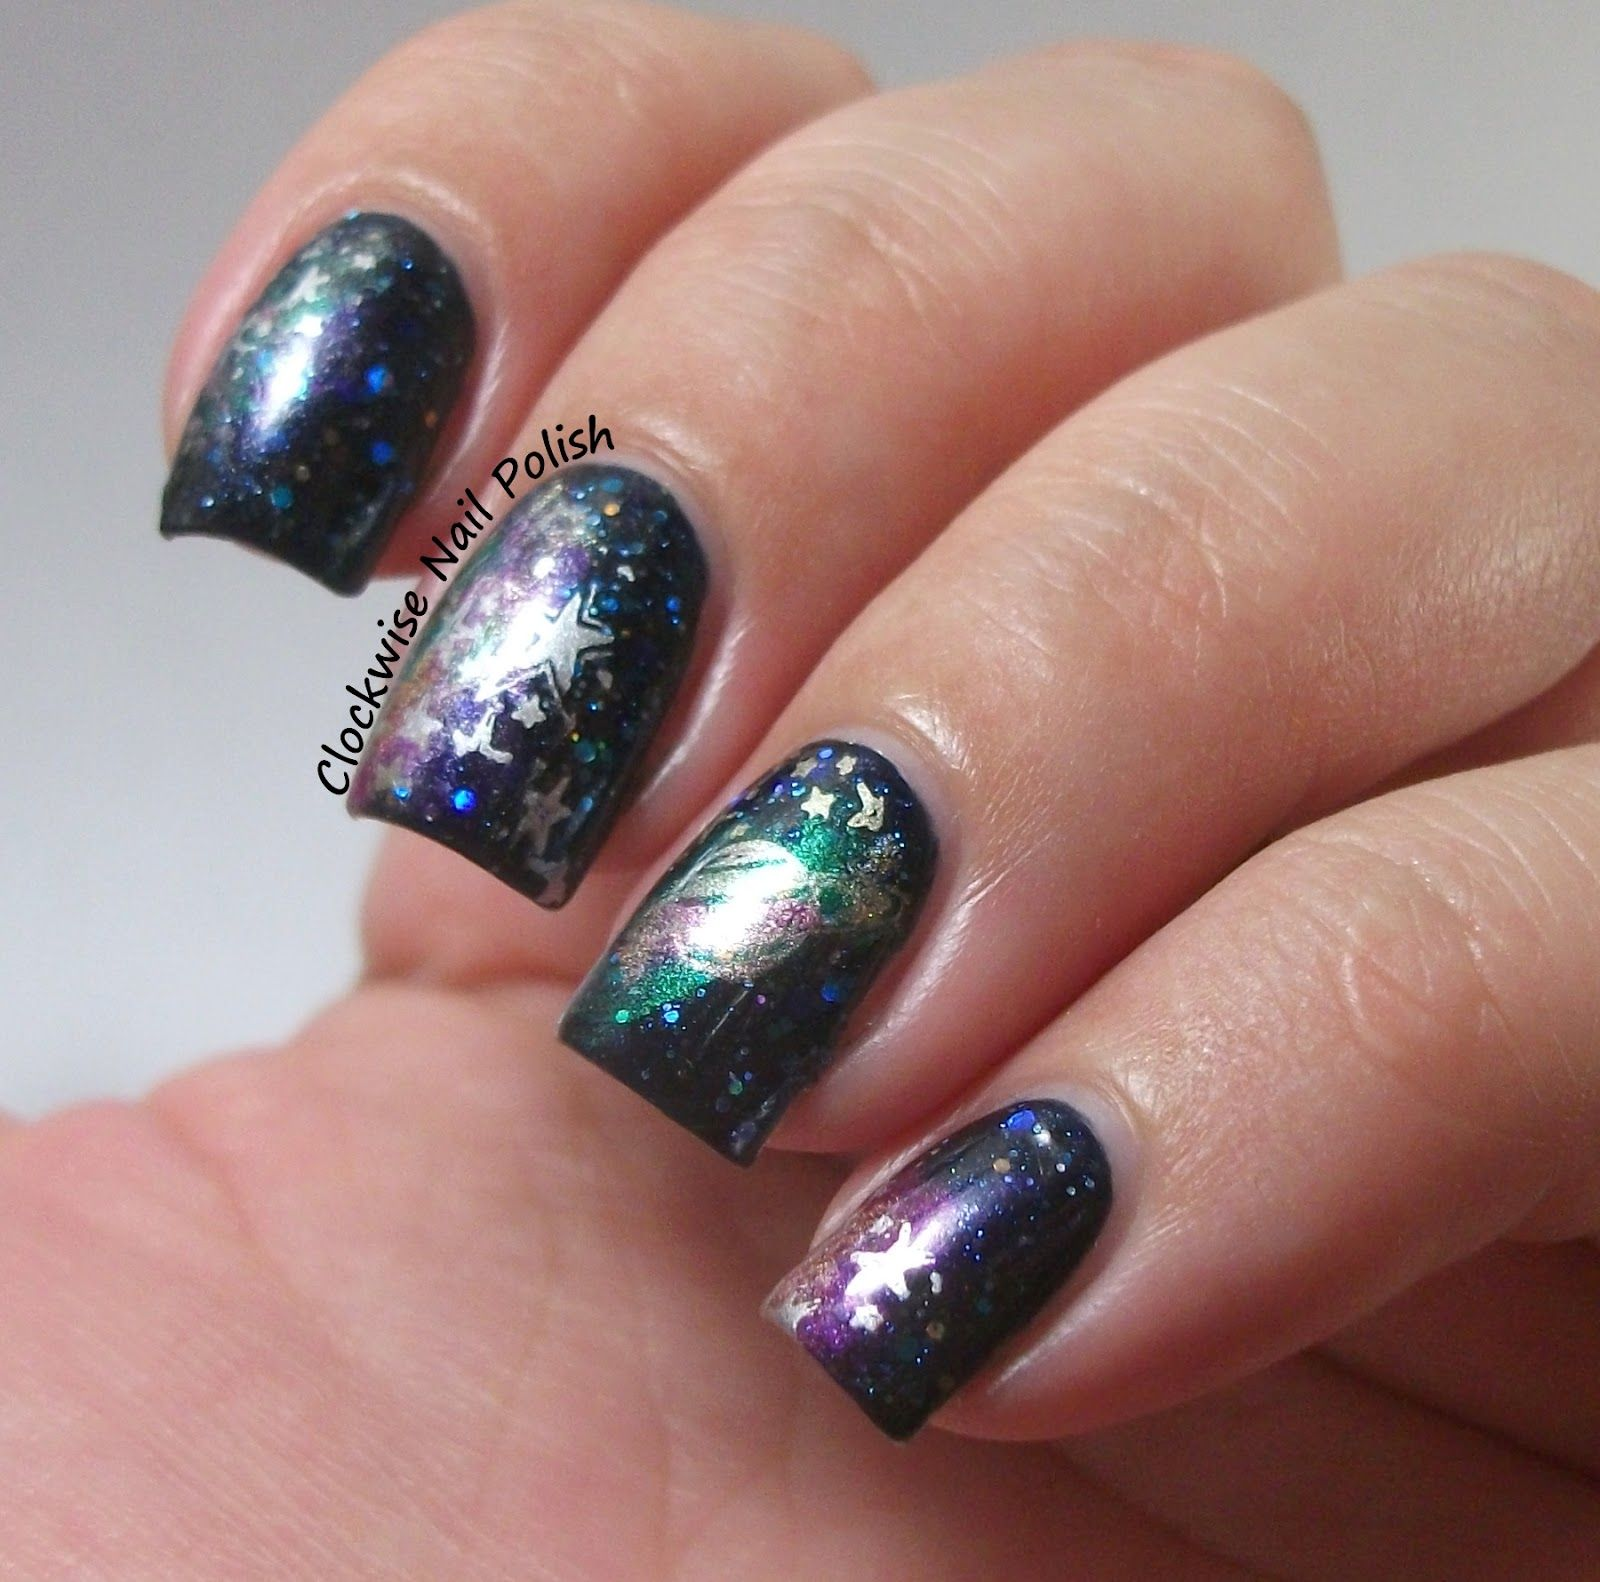 The Clockwise Nail Polish: Penélope Luz To The Infinity & Galaxy ...